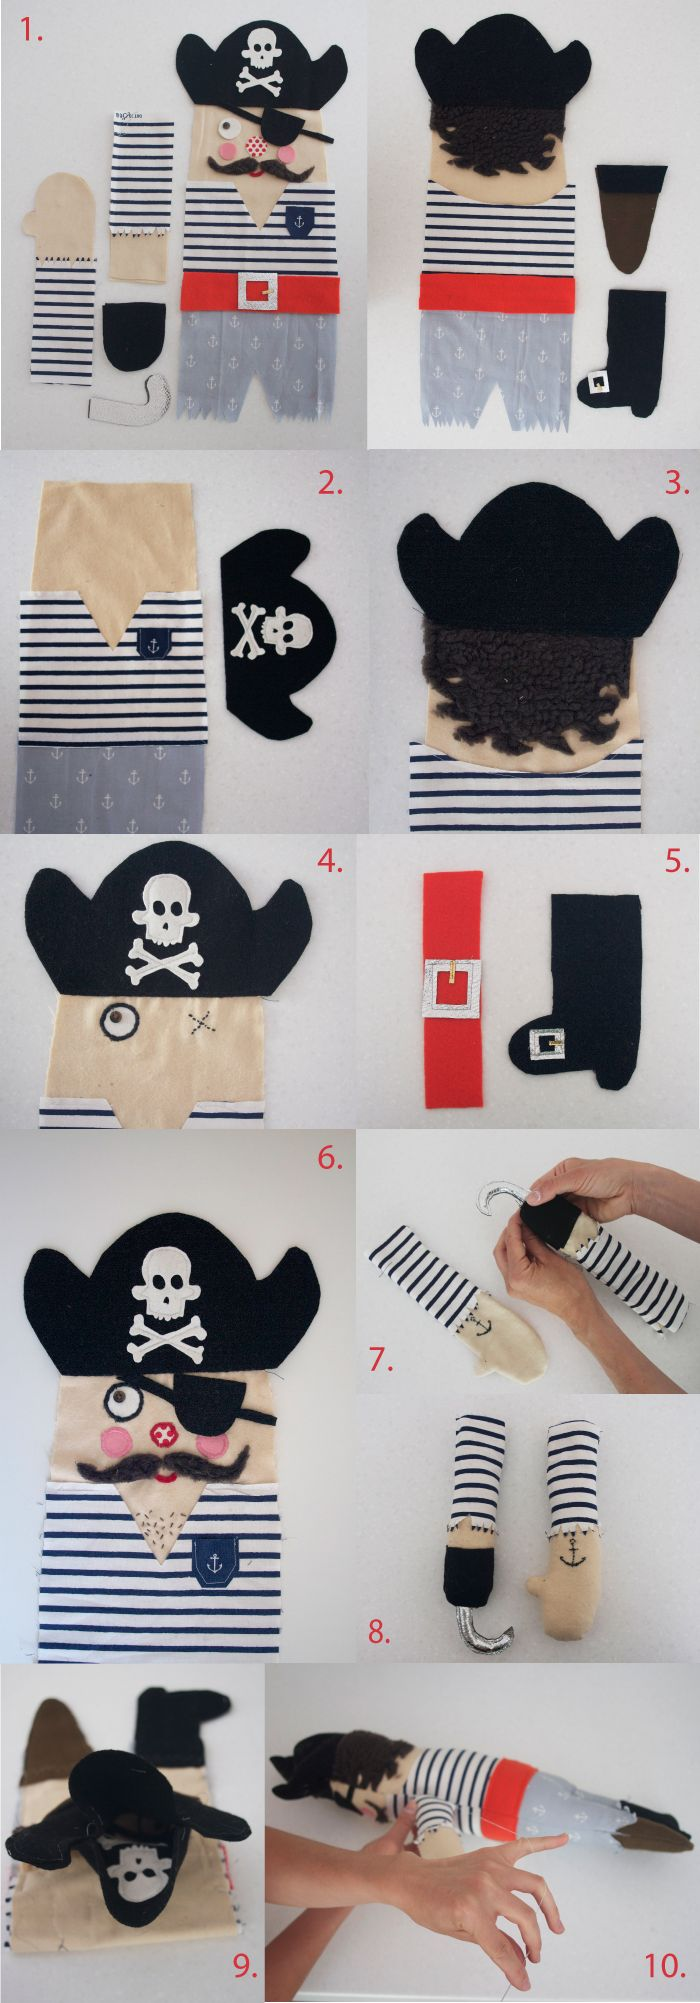 pirate doll tutorial